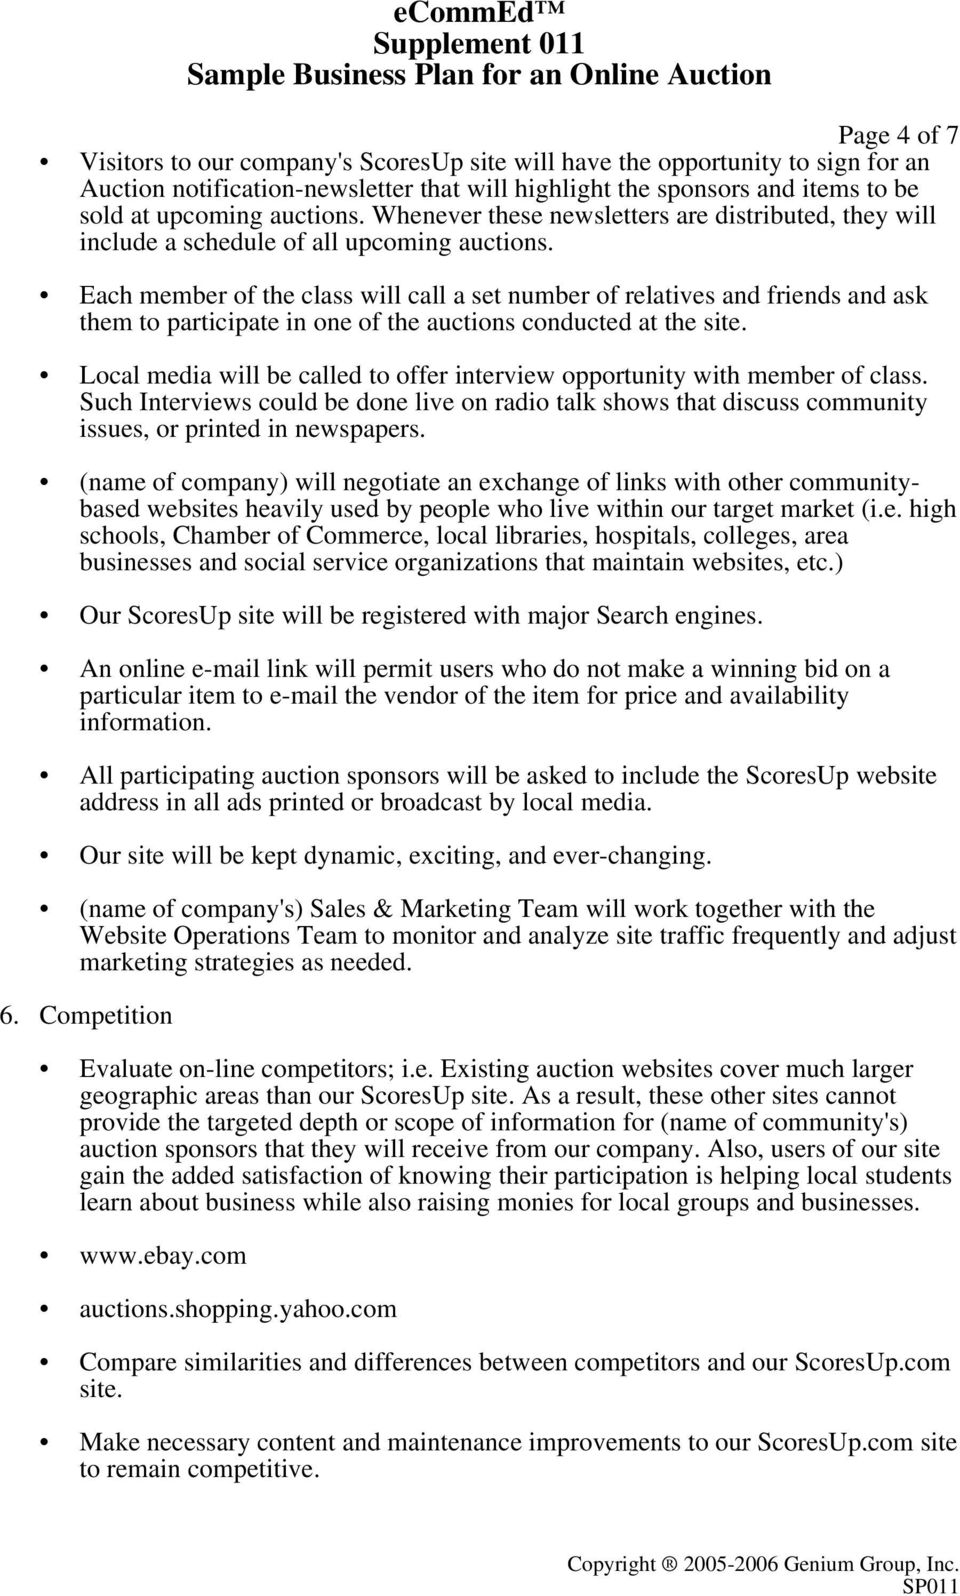 Ecommed Supplement 011 Sample Business Plan For An Online Auction Pdf Free Download